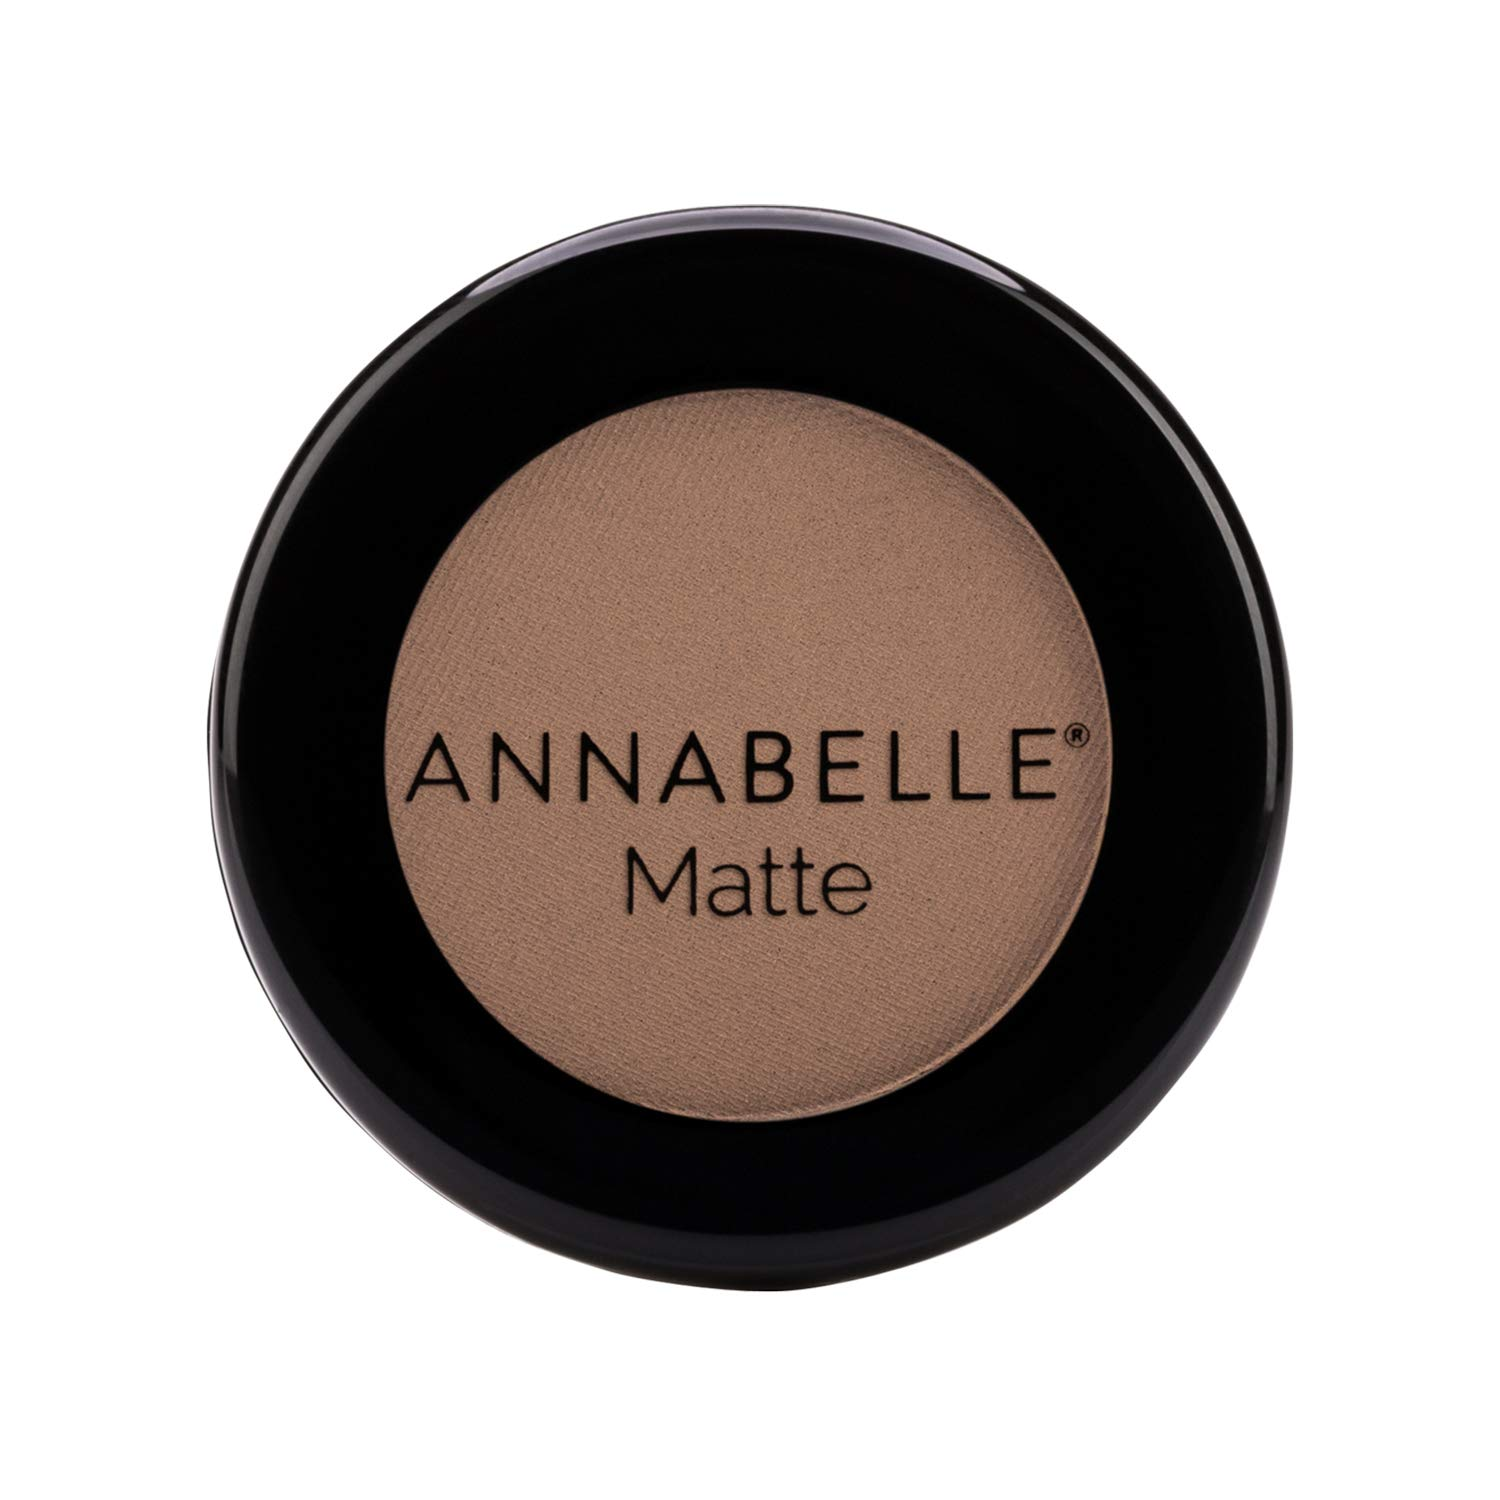 Annabelle Matte Single Eyeshadow, Storm, 1.5 g Groupe Marcelle Inc.